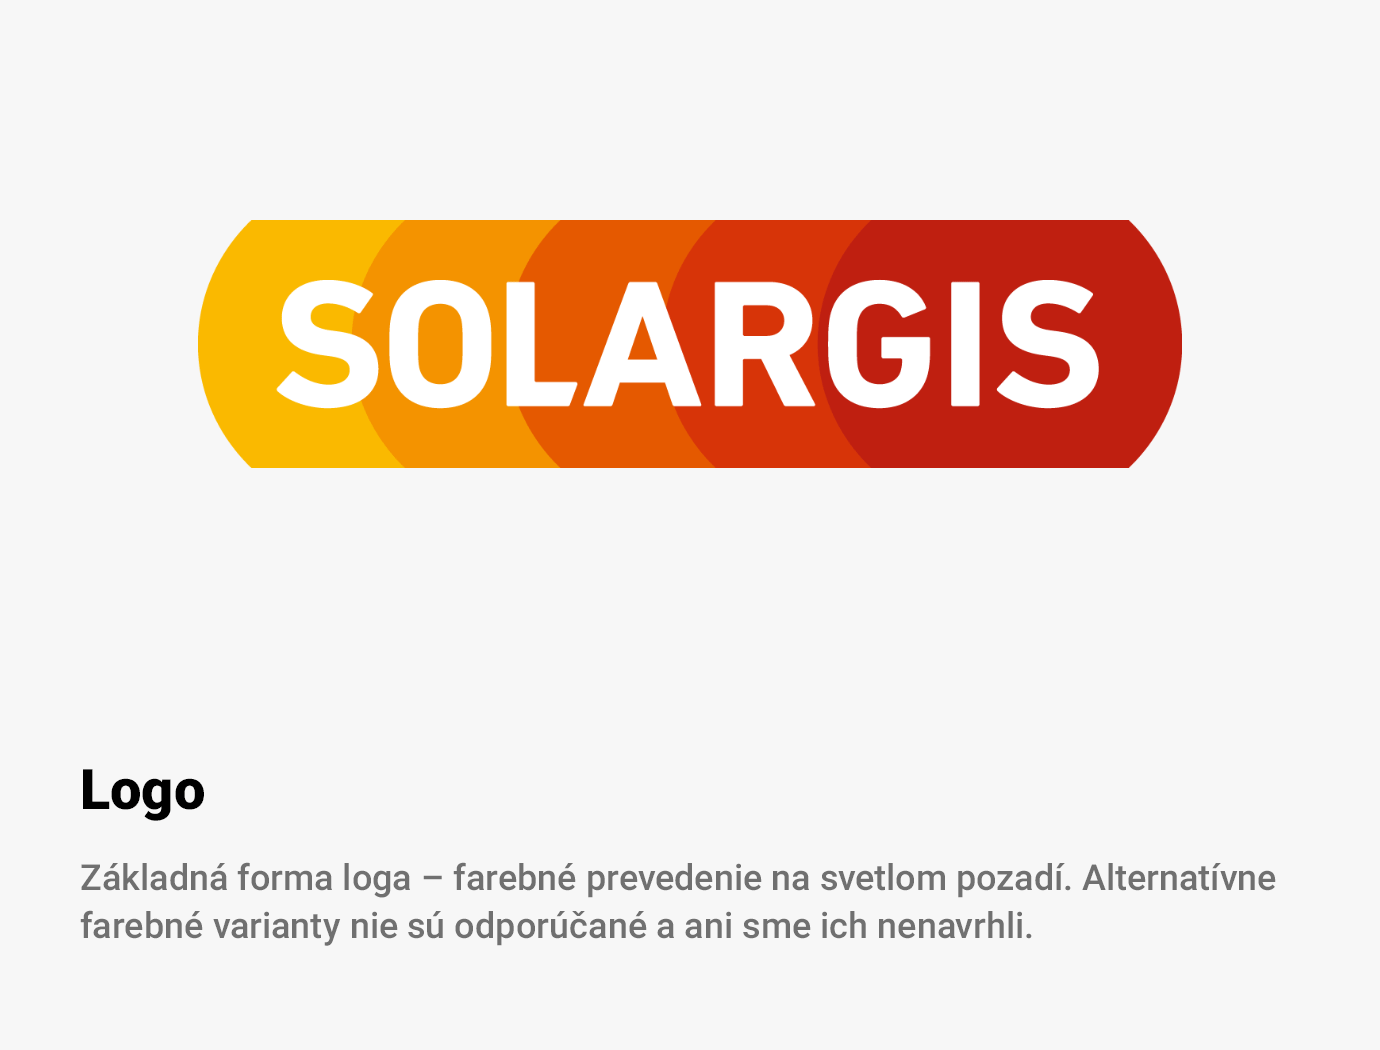 solargis ci 35 hires2